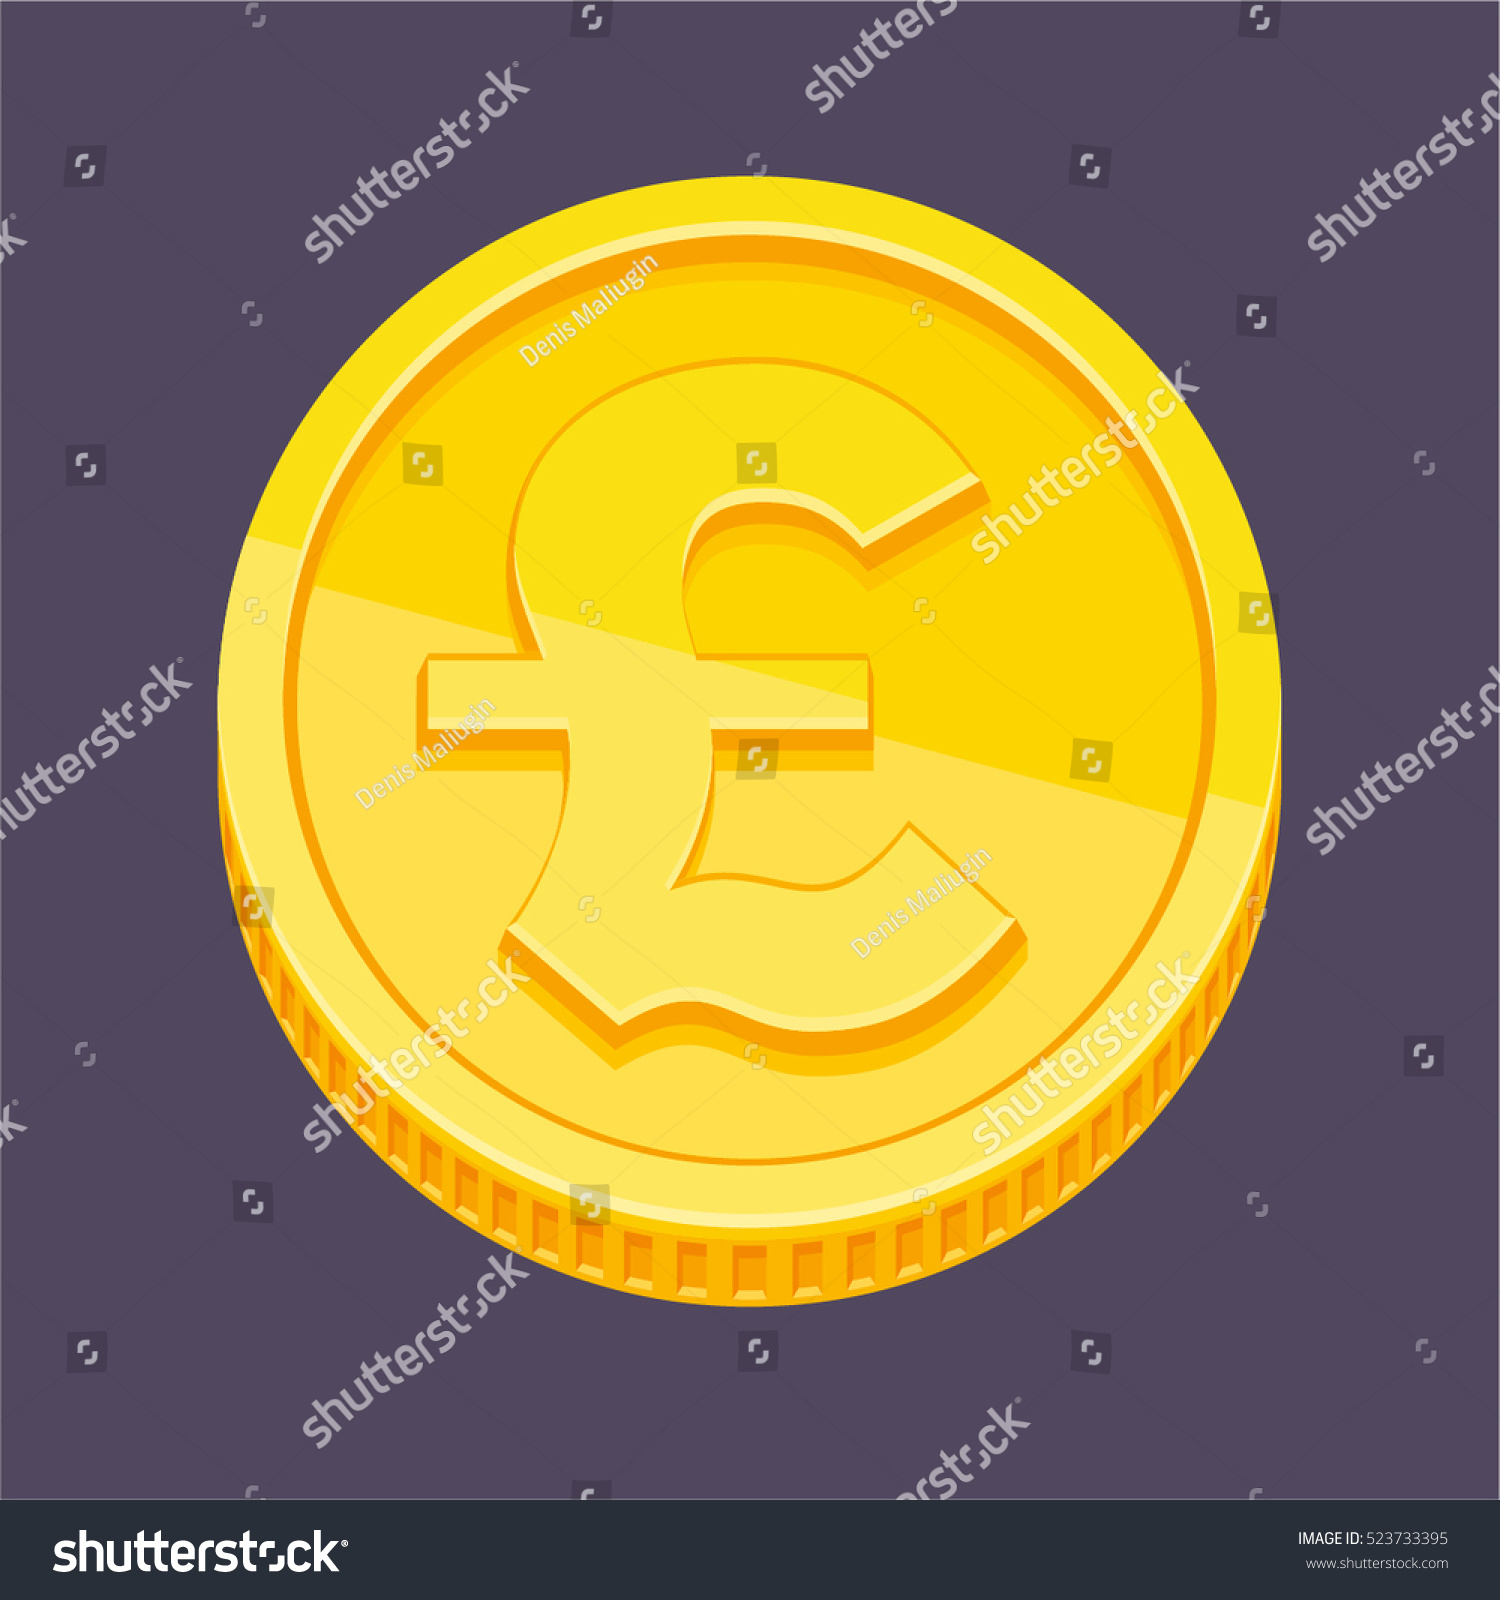 Currency symbol british pound sterling symbol stock vector currency symbol british pound sterling symbol on gold coin vector illustration biocorpaavc Images